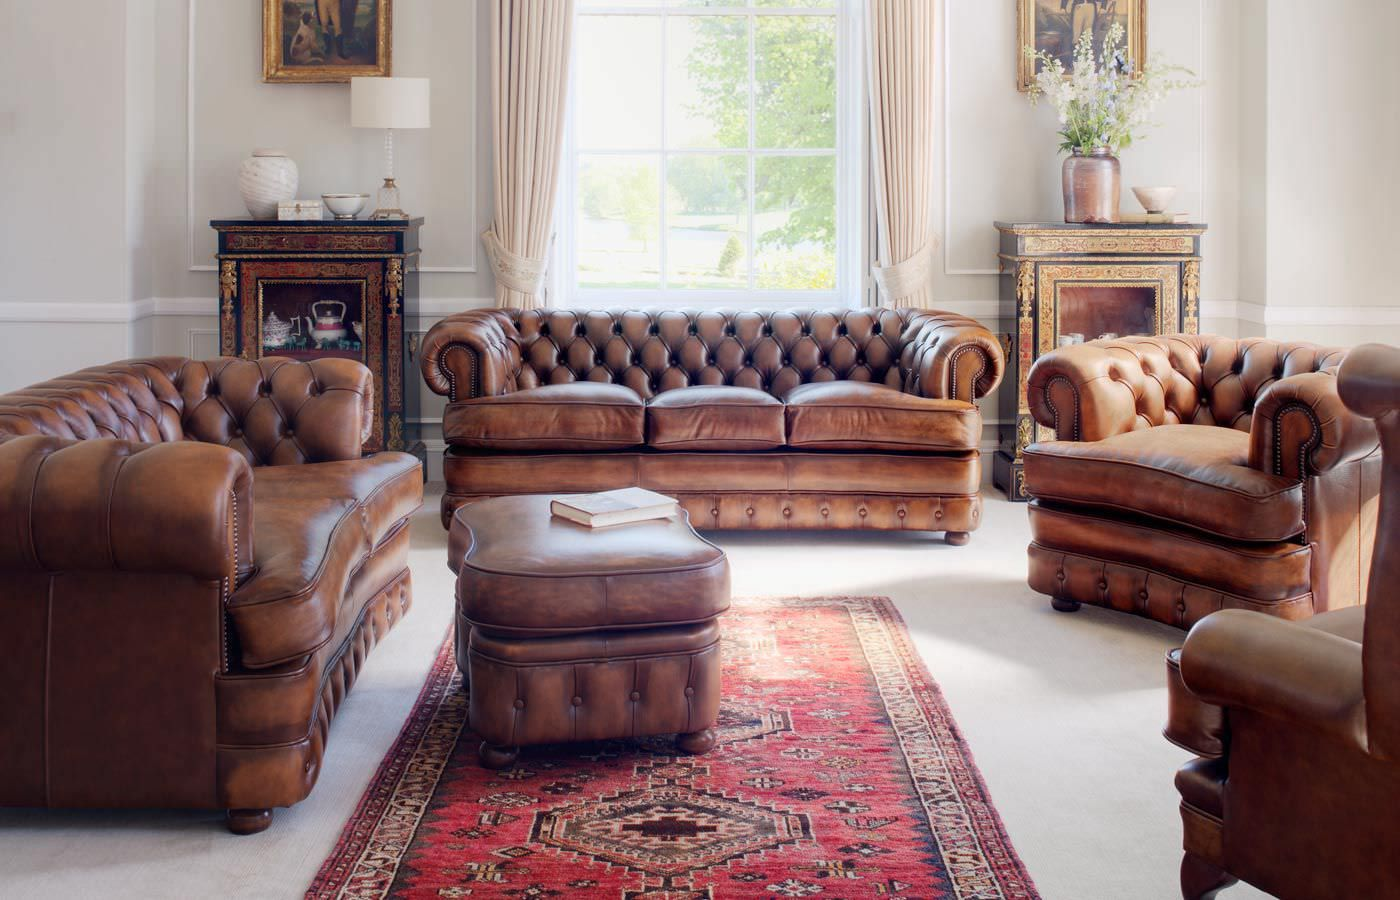 Rustic Leather Living Room Furniture Gaming Pc Build Chesterfield Sofa Set 9600 6105969 Design